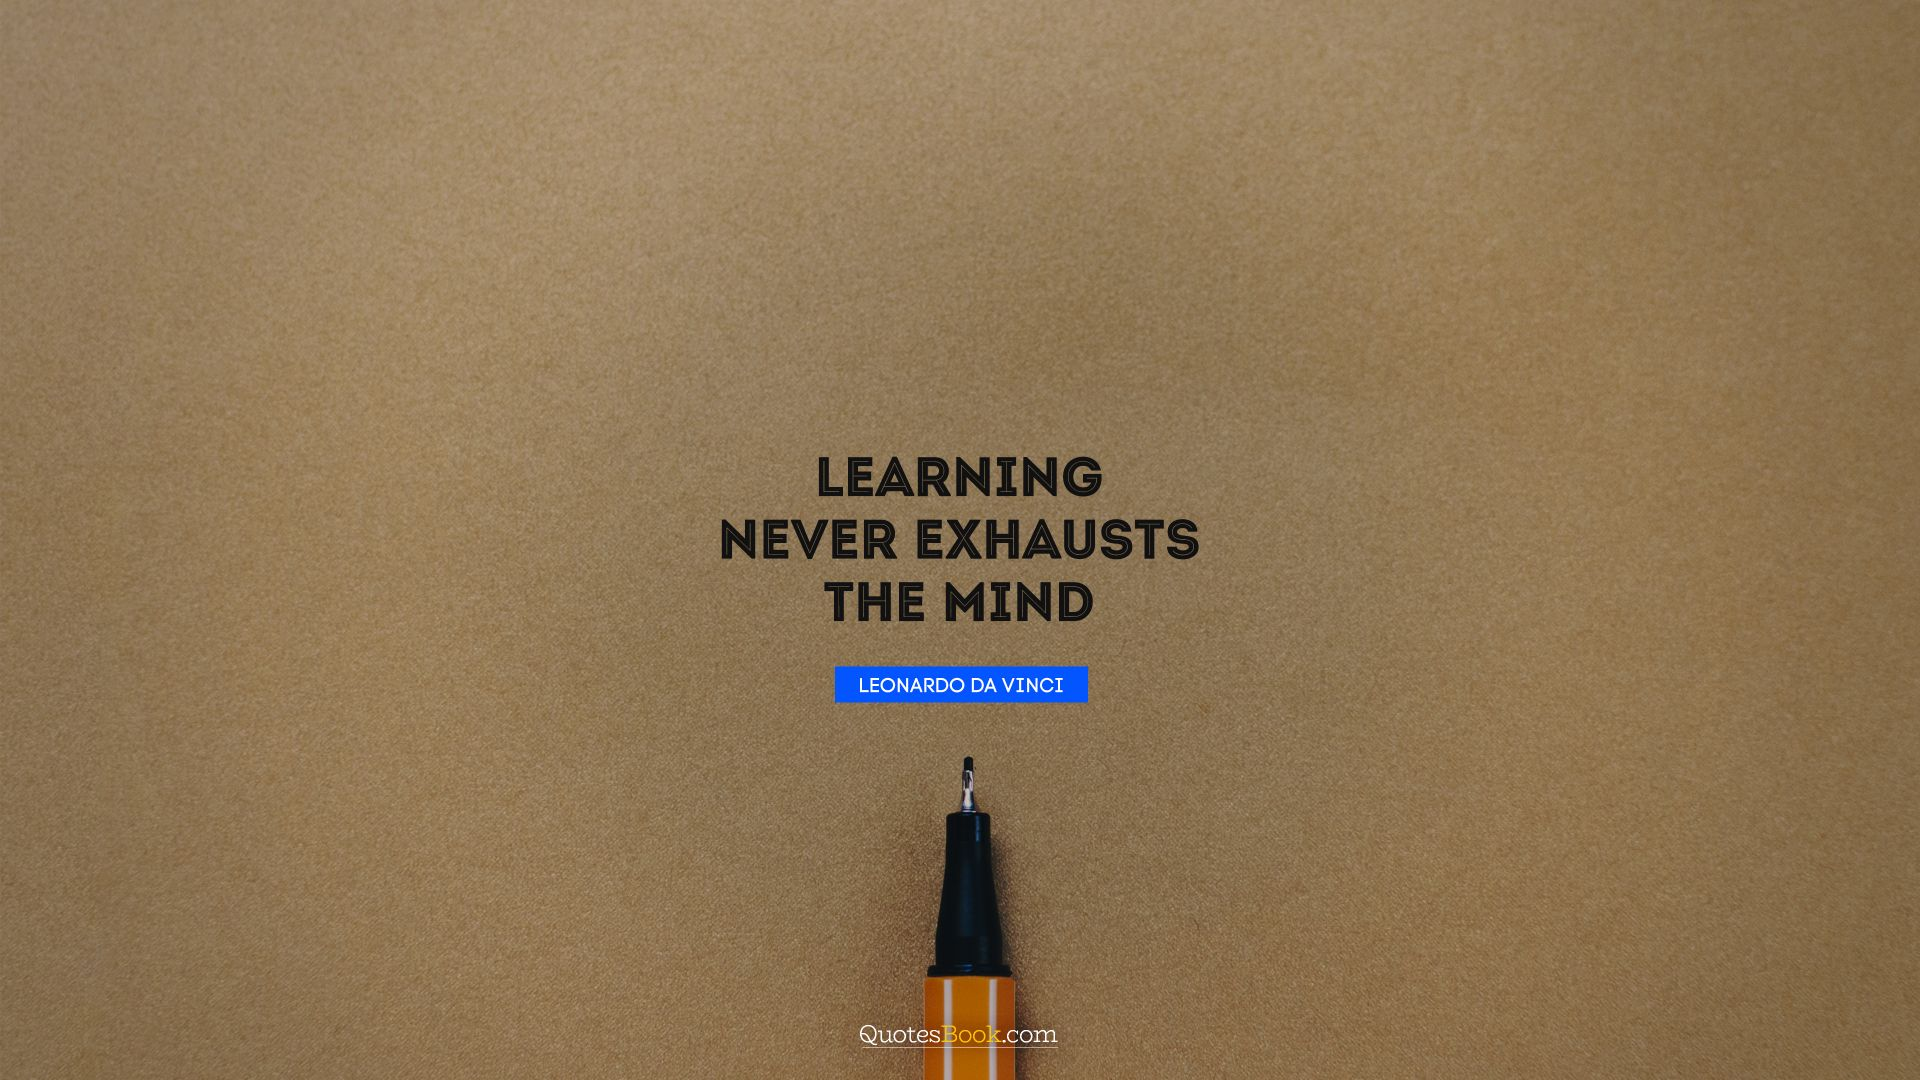 Learning never exhausts the mind. - Quote by Leonardo da Vinci